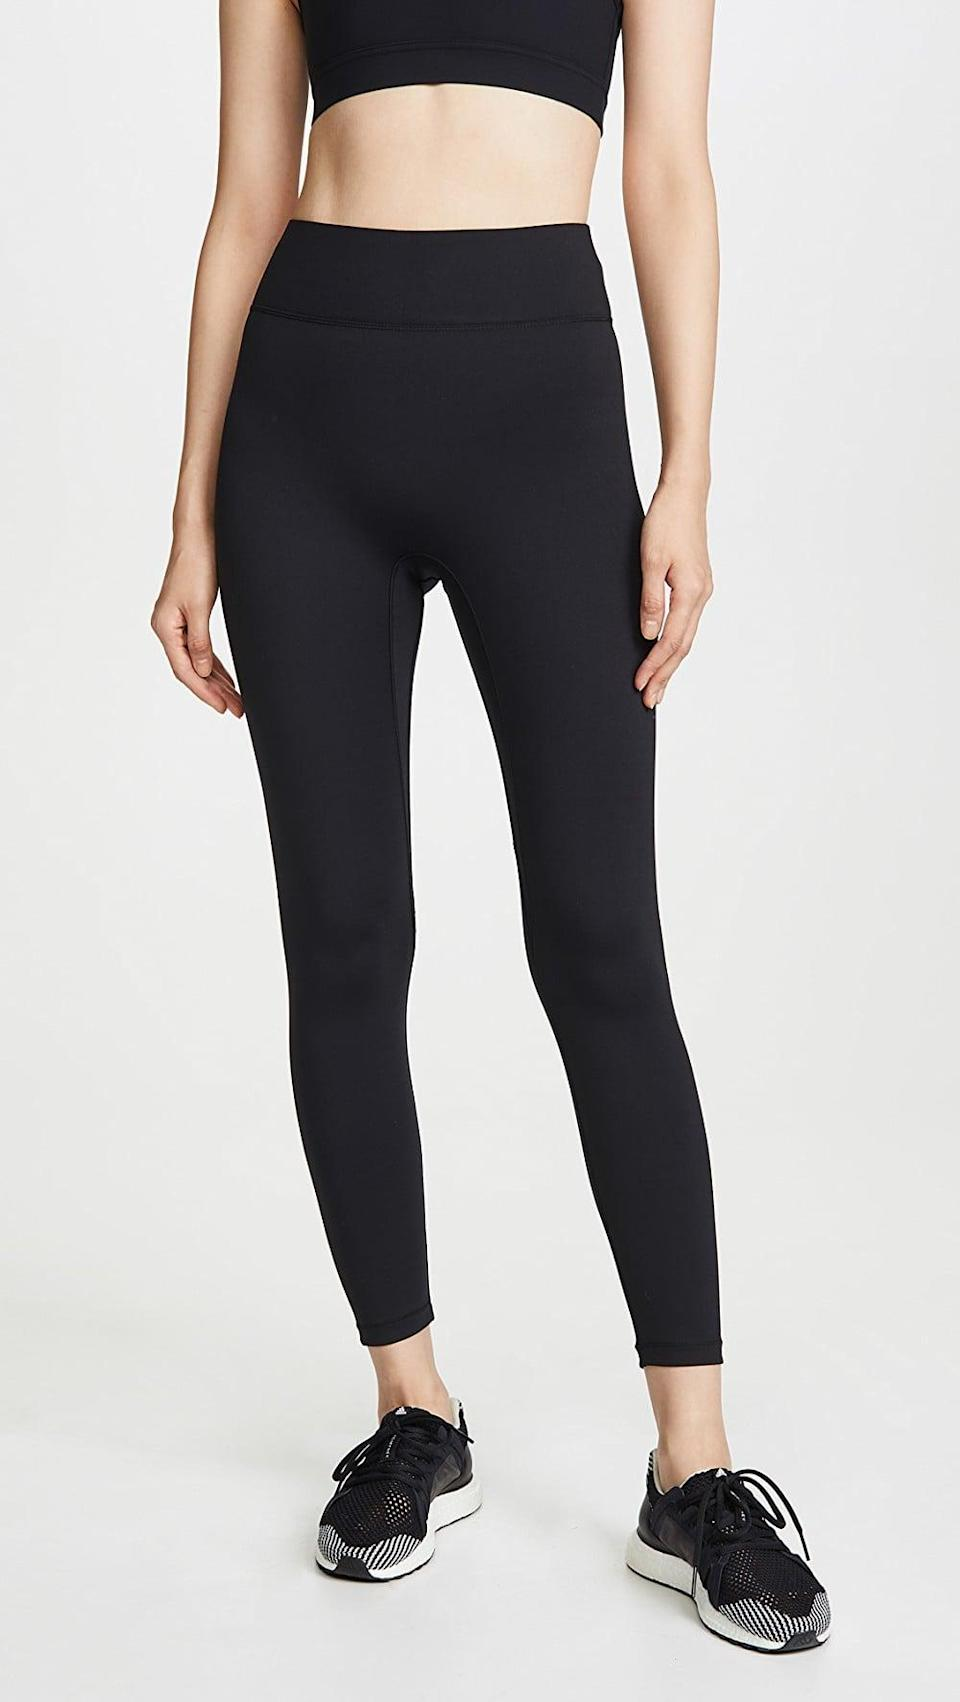 <p>If you're looking for the ideal black leggings, meet the <span>All Access Center Stage Leggings</span> ($98). They're sleek, hold you in, and fit in with every activity, from pilates to boxing.</p>